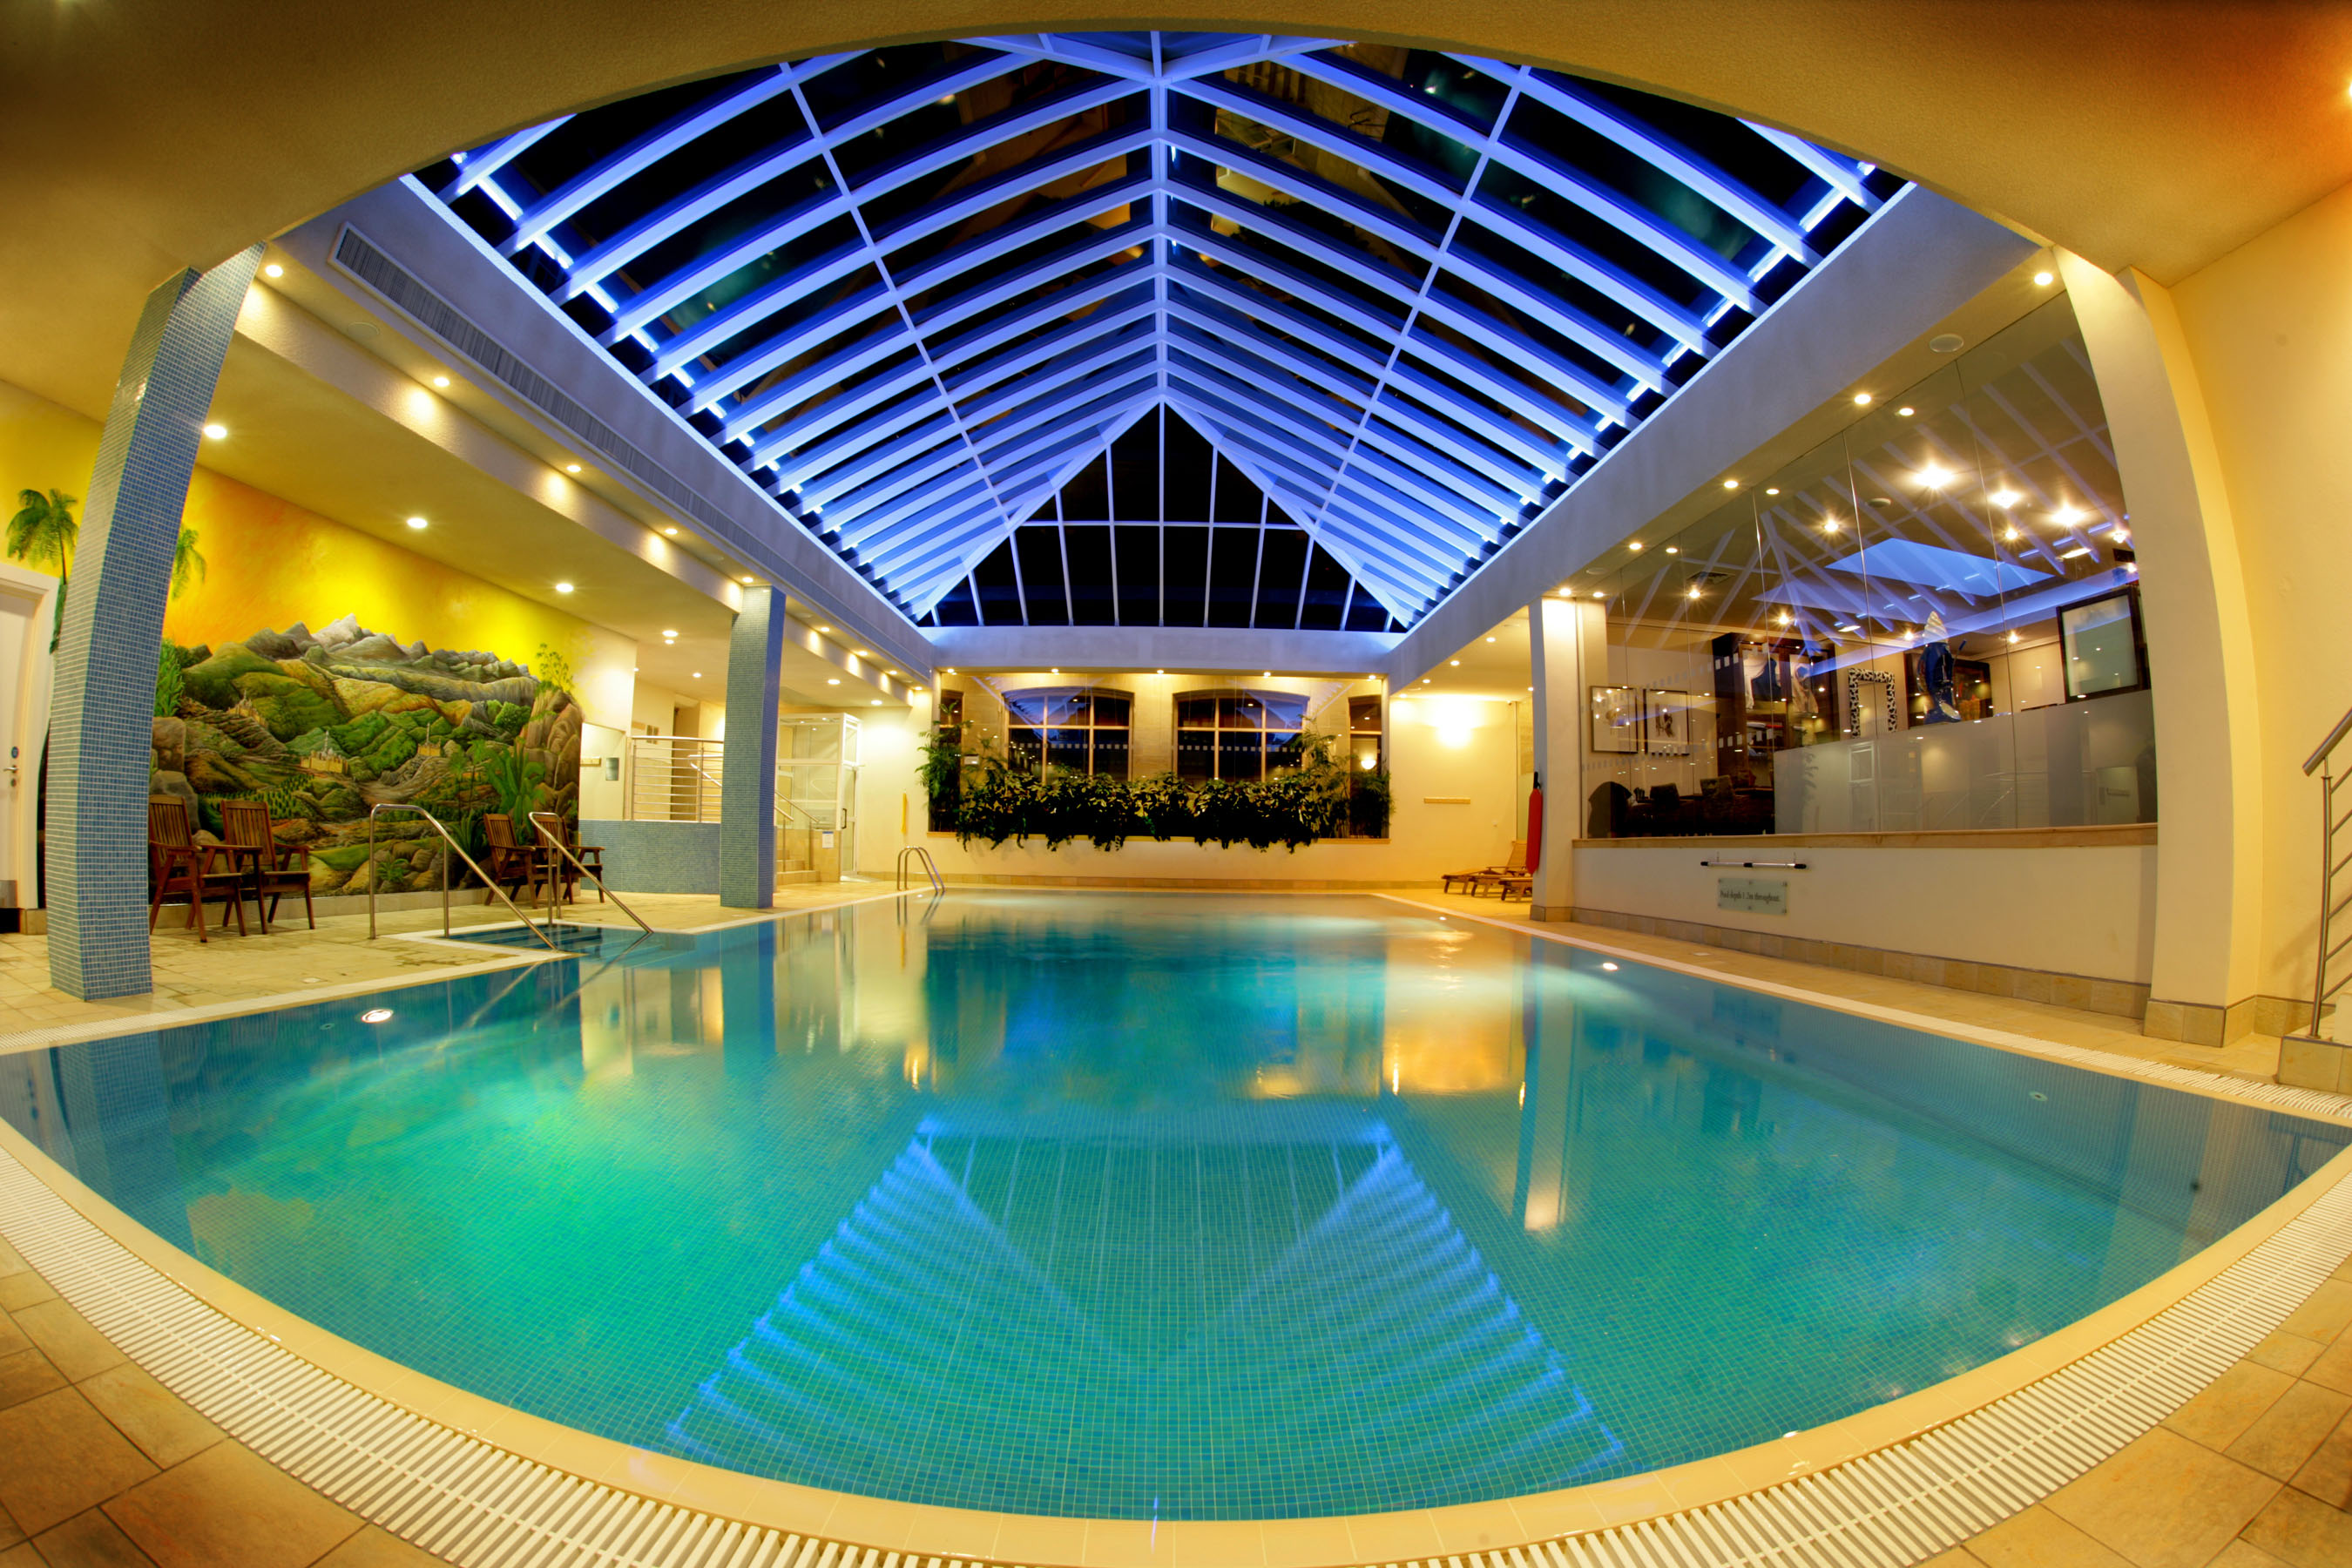 Indoor swimming pool ideas homesfeed for Indoor garden pool